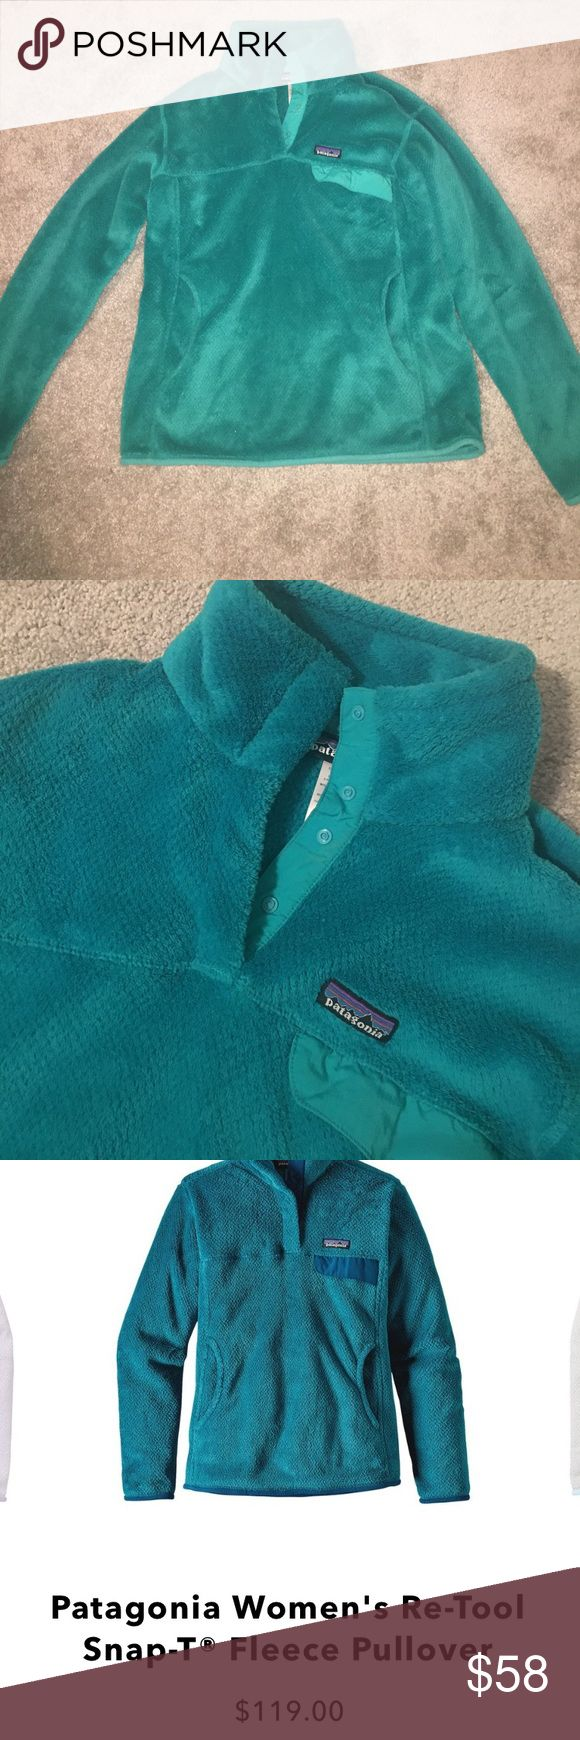 Teal Patagonia retool pullover Gorgeous color. Great condition. Patagonia Tops Sweatshirts & Hoodies